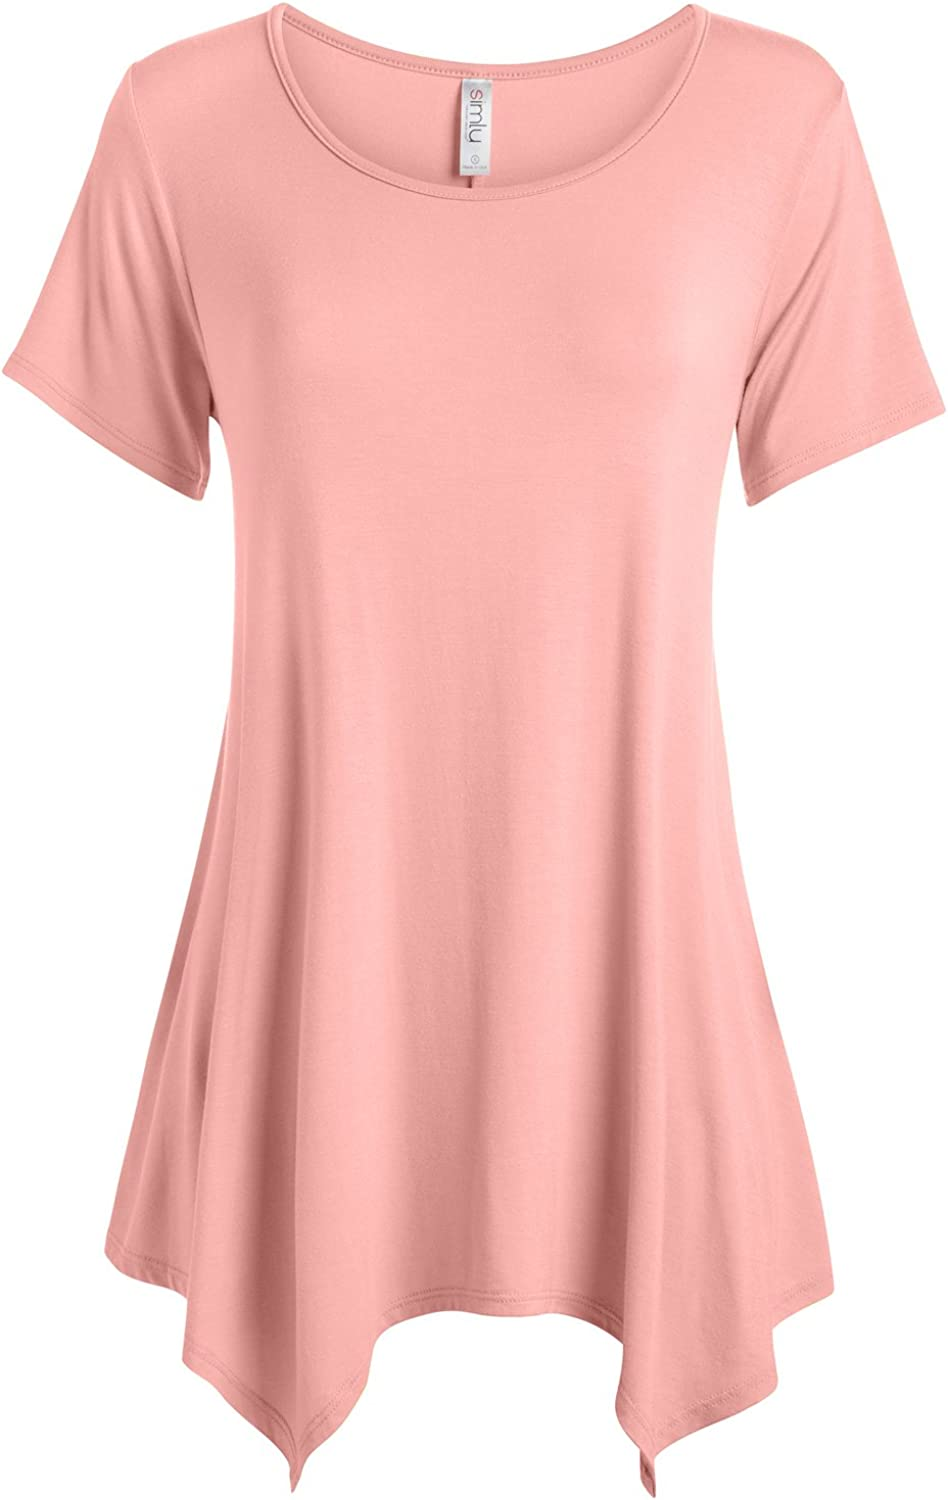 Womens Basic Tunic Top Reg and Plus Size Short Sleeve Flowy Loose T Shirt USA